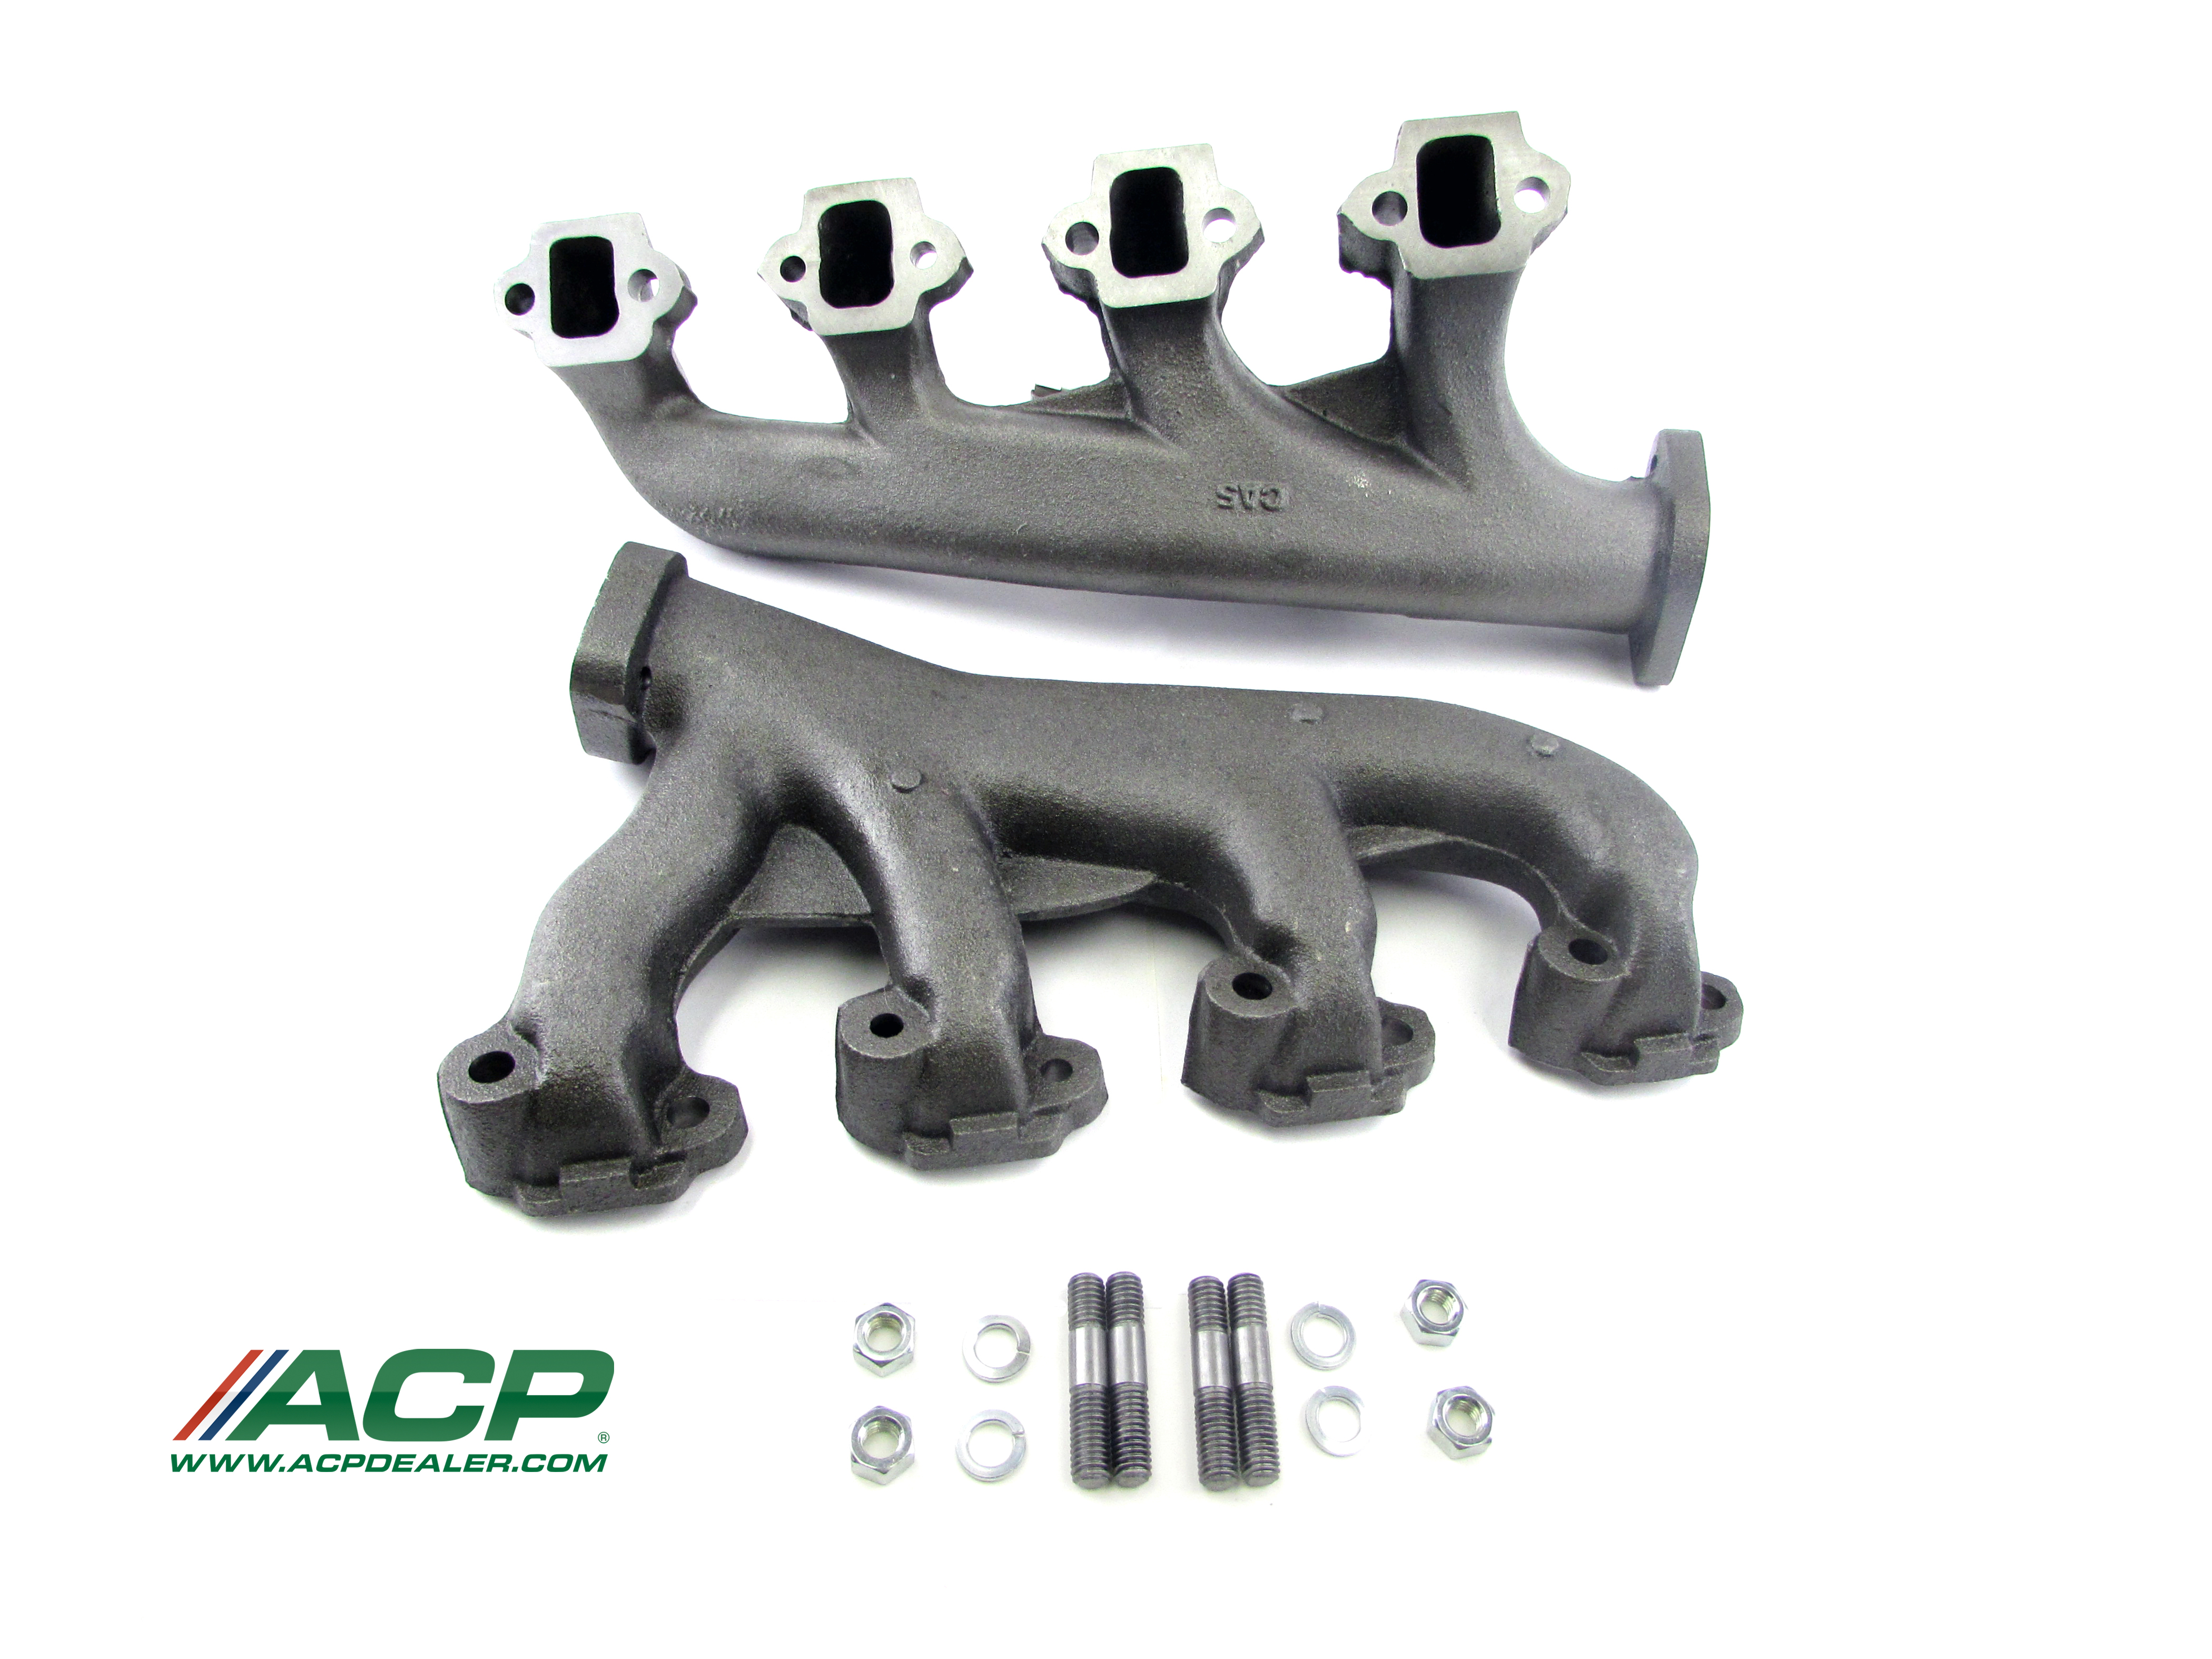 1965-67 Ford Mustang 289 HiPo Exhaust Manifolds  High Quality Reproduction Manifolds